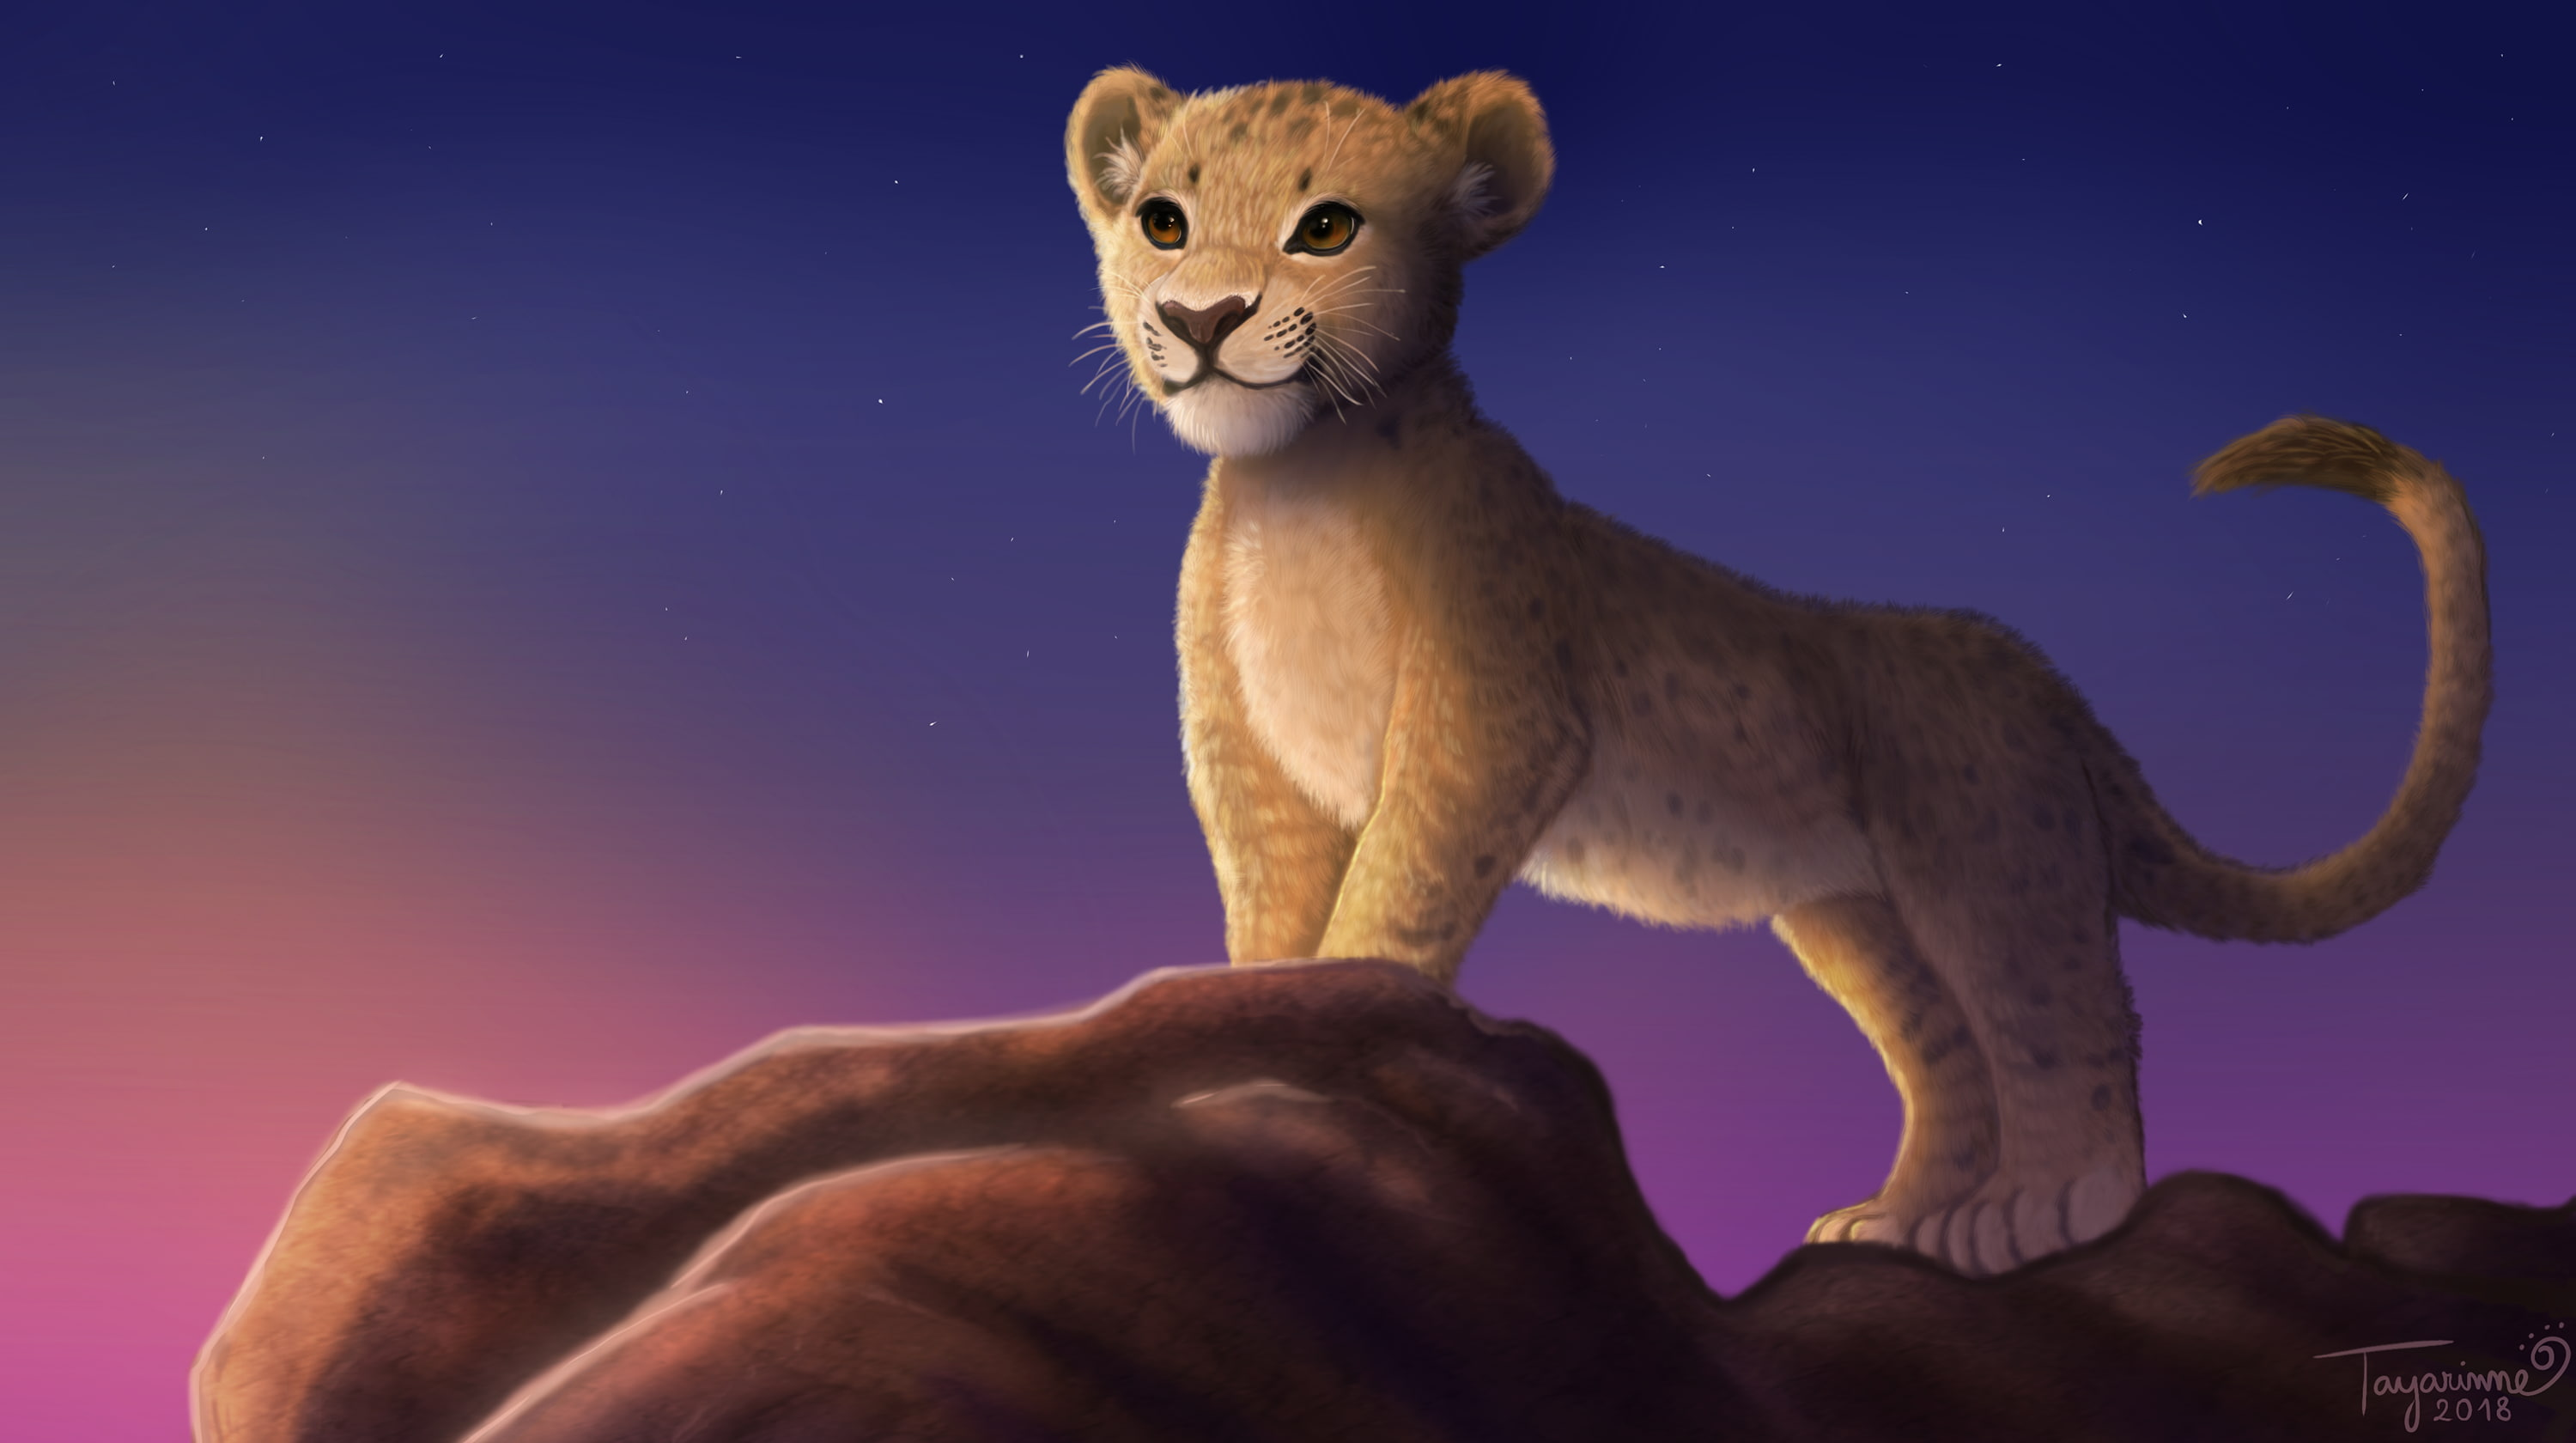 Movie, The Lion King , Simba - Simba The Lion King 2019 , HD Wallpaper & Backgrounds